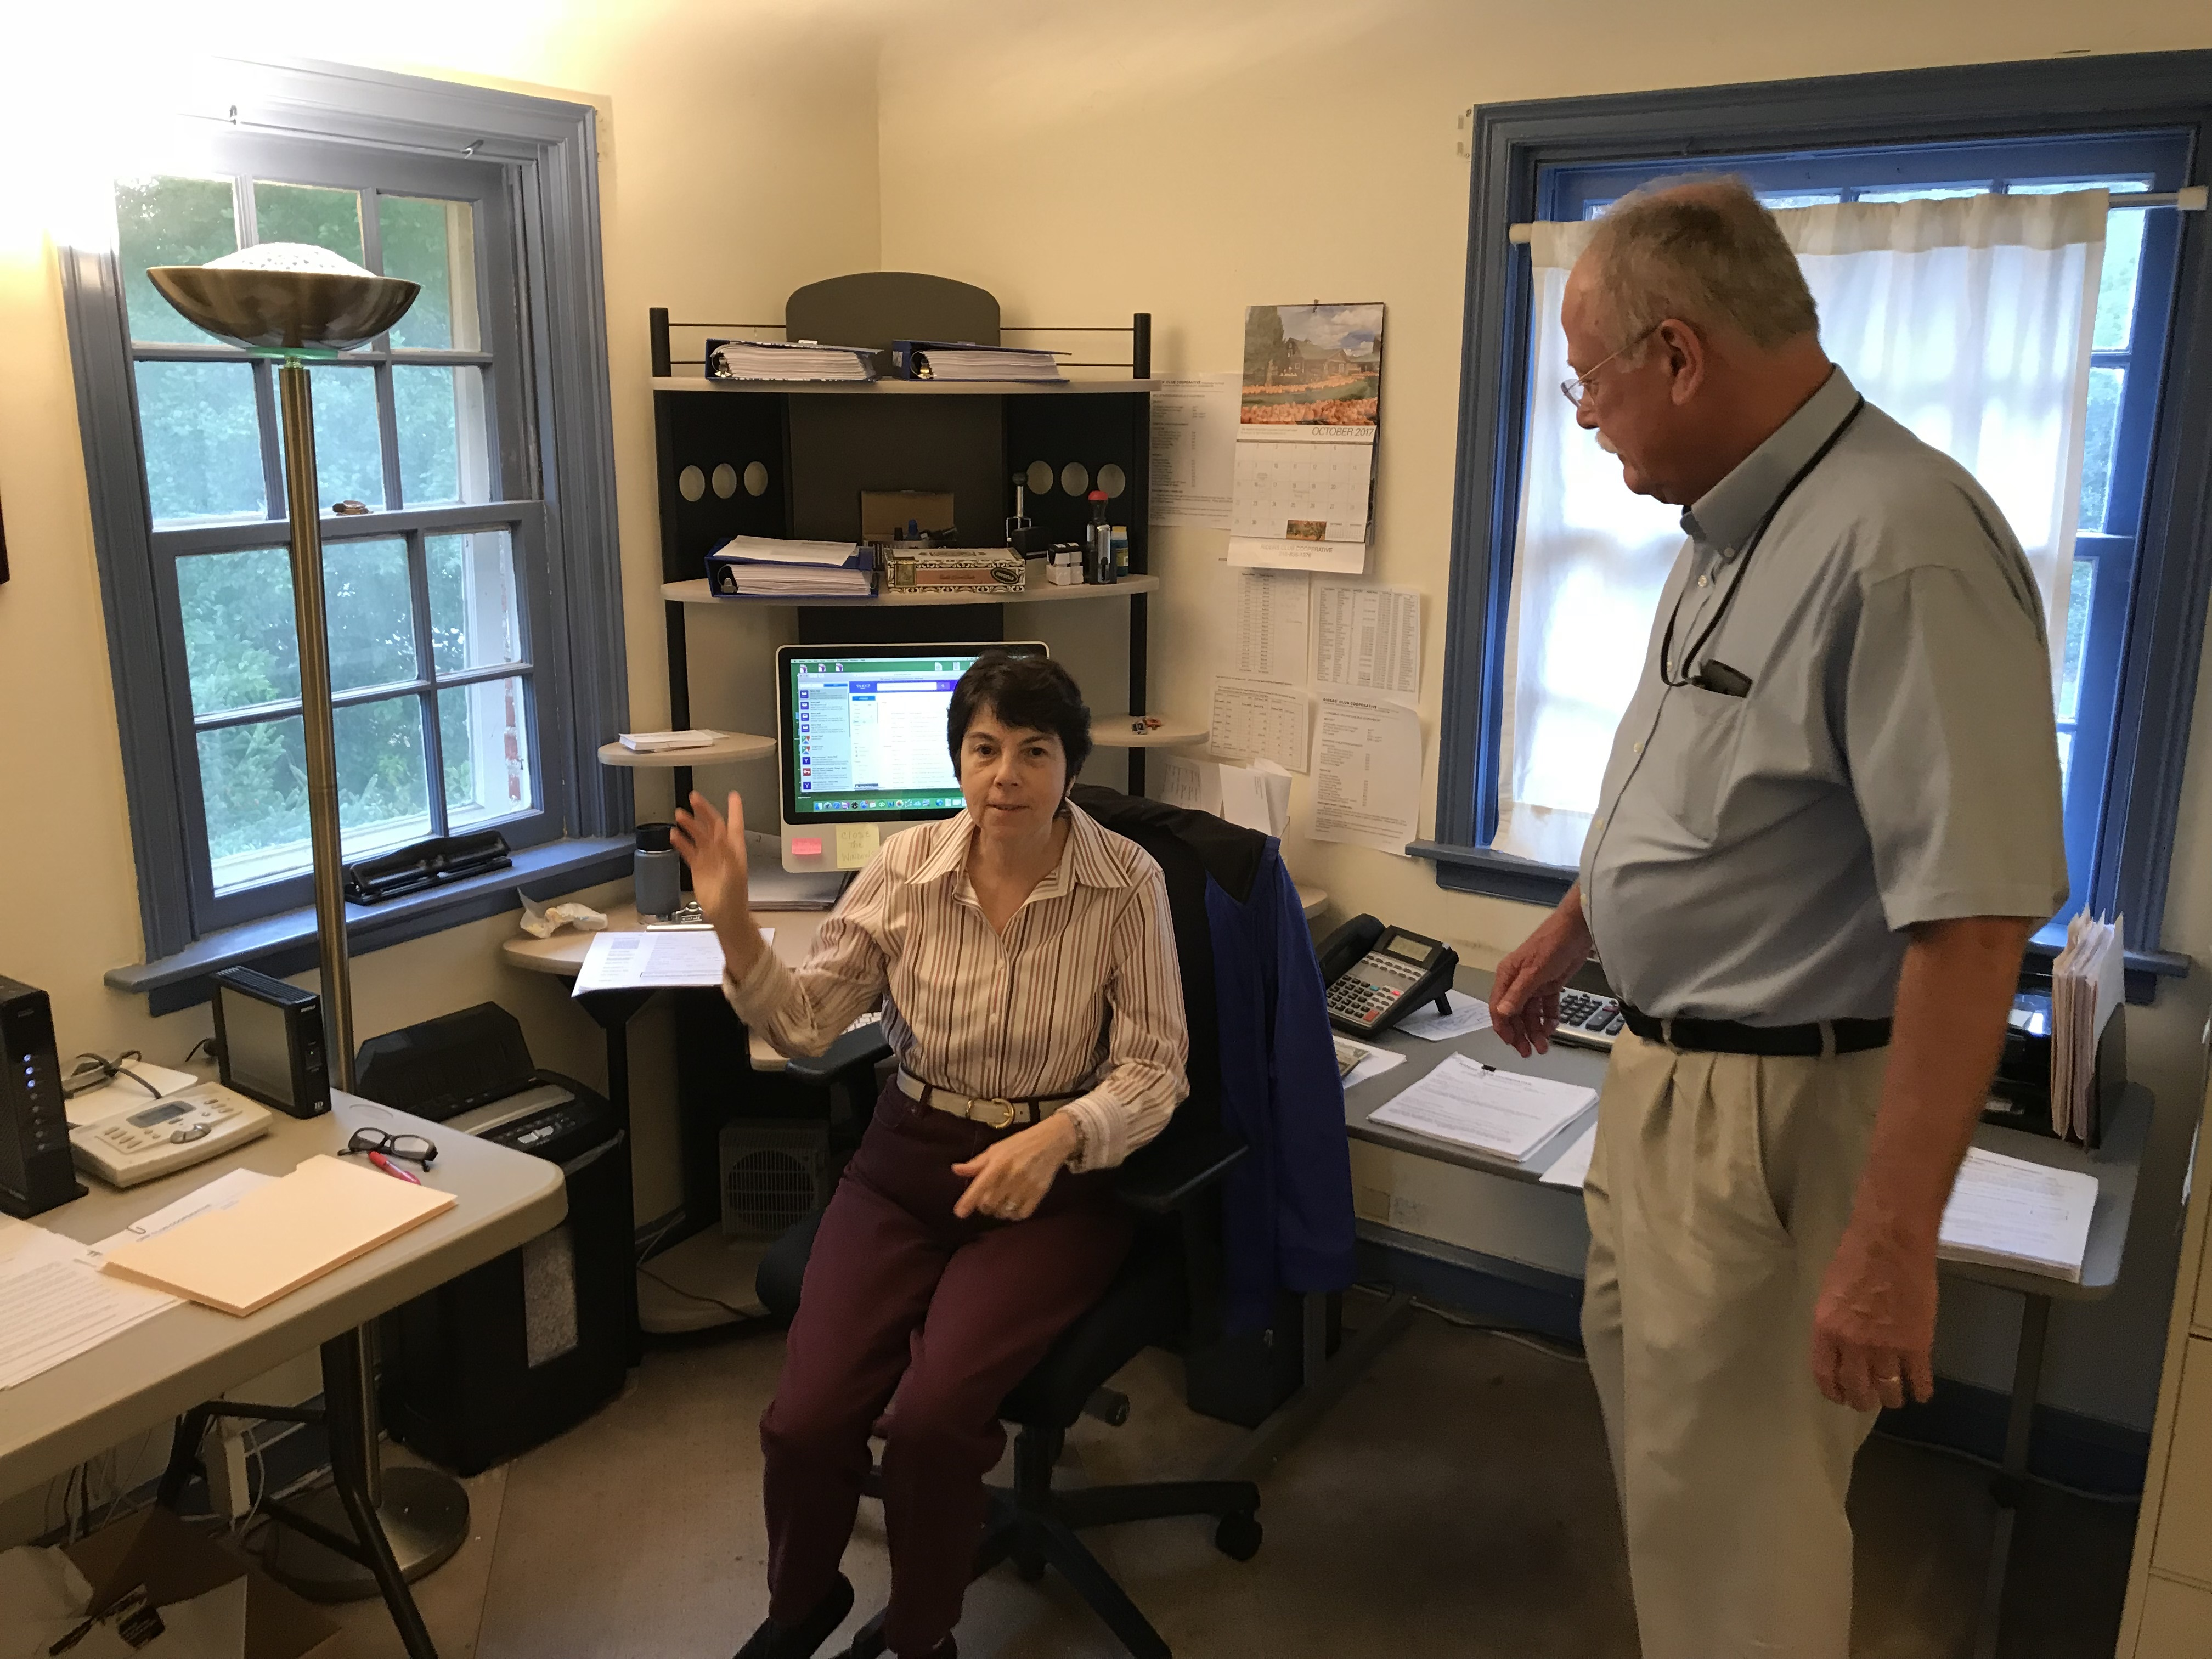 Riders Club Co-Op founder Paxton Wray, right, with his assistant and scheduler Marianne Fluehr at headquarters in Erdenheim (Credit: Erin Arvedlund)